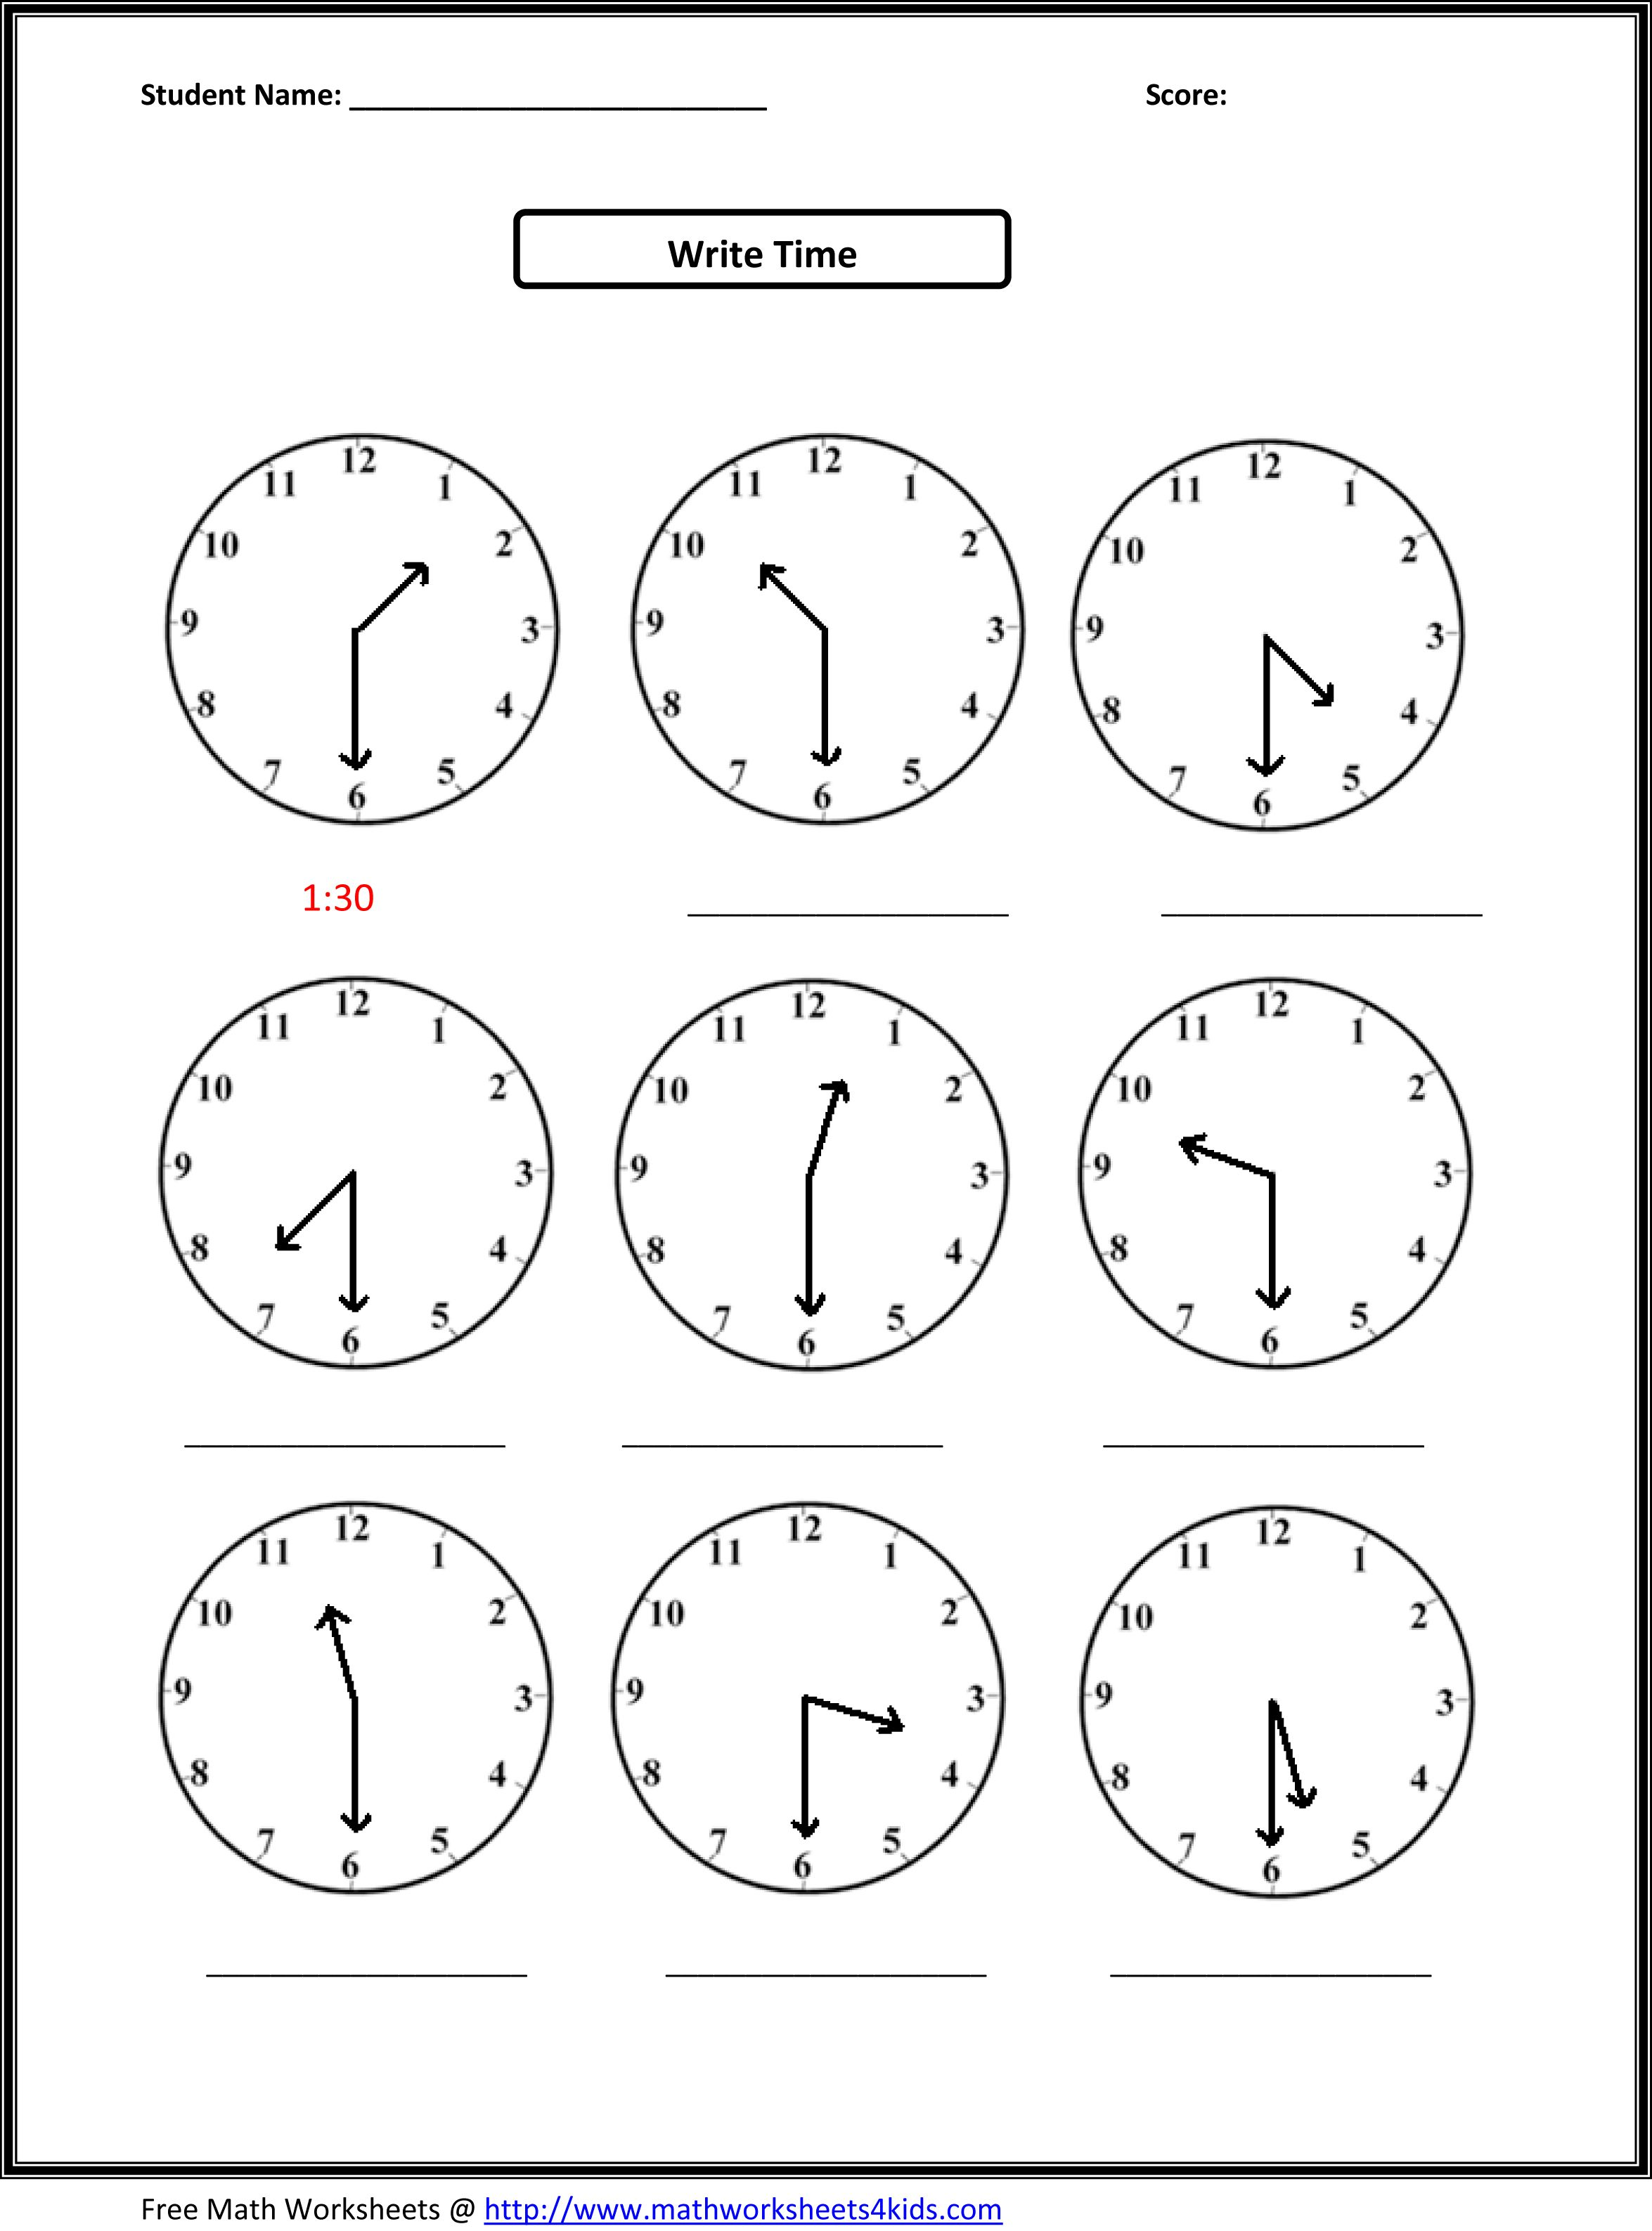 Weirdmailus  Prepossessing Worksheet On Time For Grade   Reocurent With Exquisite Free Printable Telling Time Worksheets Nd Grade  Reocurent With Charming  Digit Addition And Subtraction Worksheet Also Ratio Proportion Worksheet In Addition Penny And Nickel Worksheets And Free Printable Th Grade Worksheets As Well As Line Design Worksheets Additionally Make Your Own Multiplication Worksheet From Reocurentcom With Weirdmailus  Exquisite Worksheet On Time For Grade   Reocurent With Charming Free Printable Telling Time Worksheets Nd Grade  Reocurent And Prepossessing  Digit Addition And Subtraction Worksheet Also Ratio Proportion Worksheet In Addition Penny And Nickel Worksheets From Reocurentcom